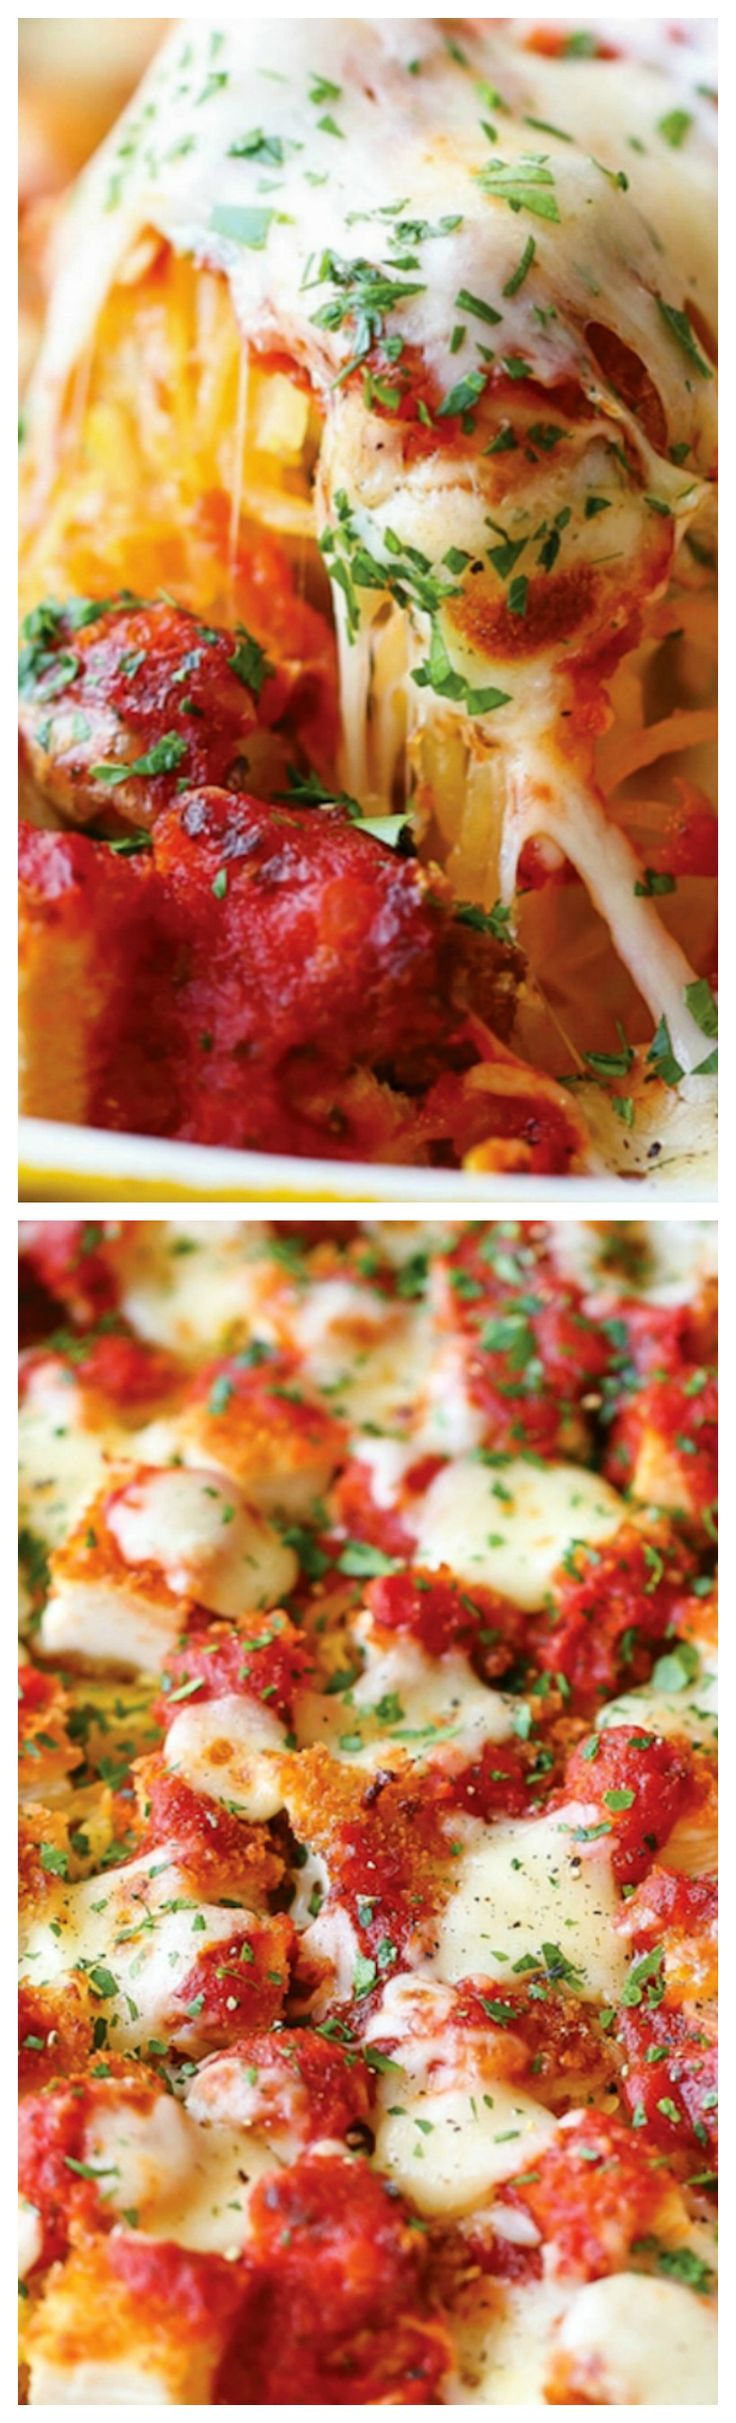 Spaghetti Squash Chicken Parmesan ~ An amazingly healthier version of everyone's favorite chicken parm without compromising taste... The best comfort food!